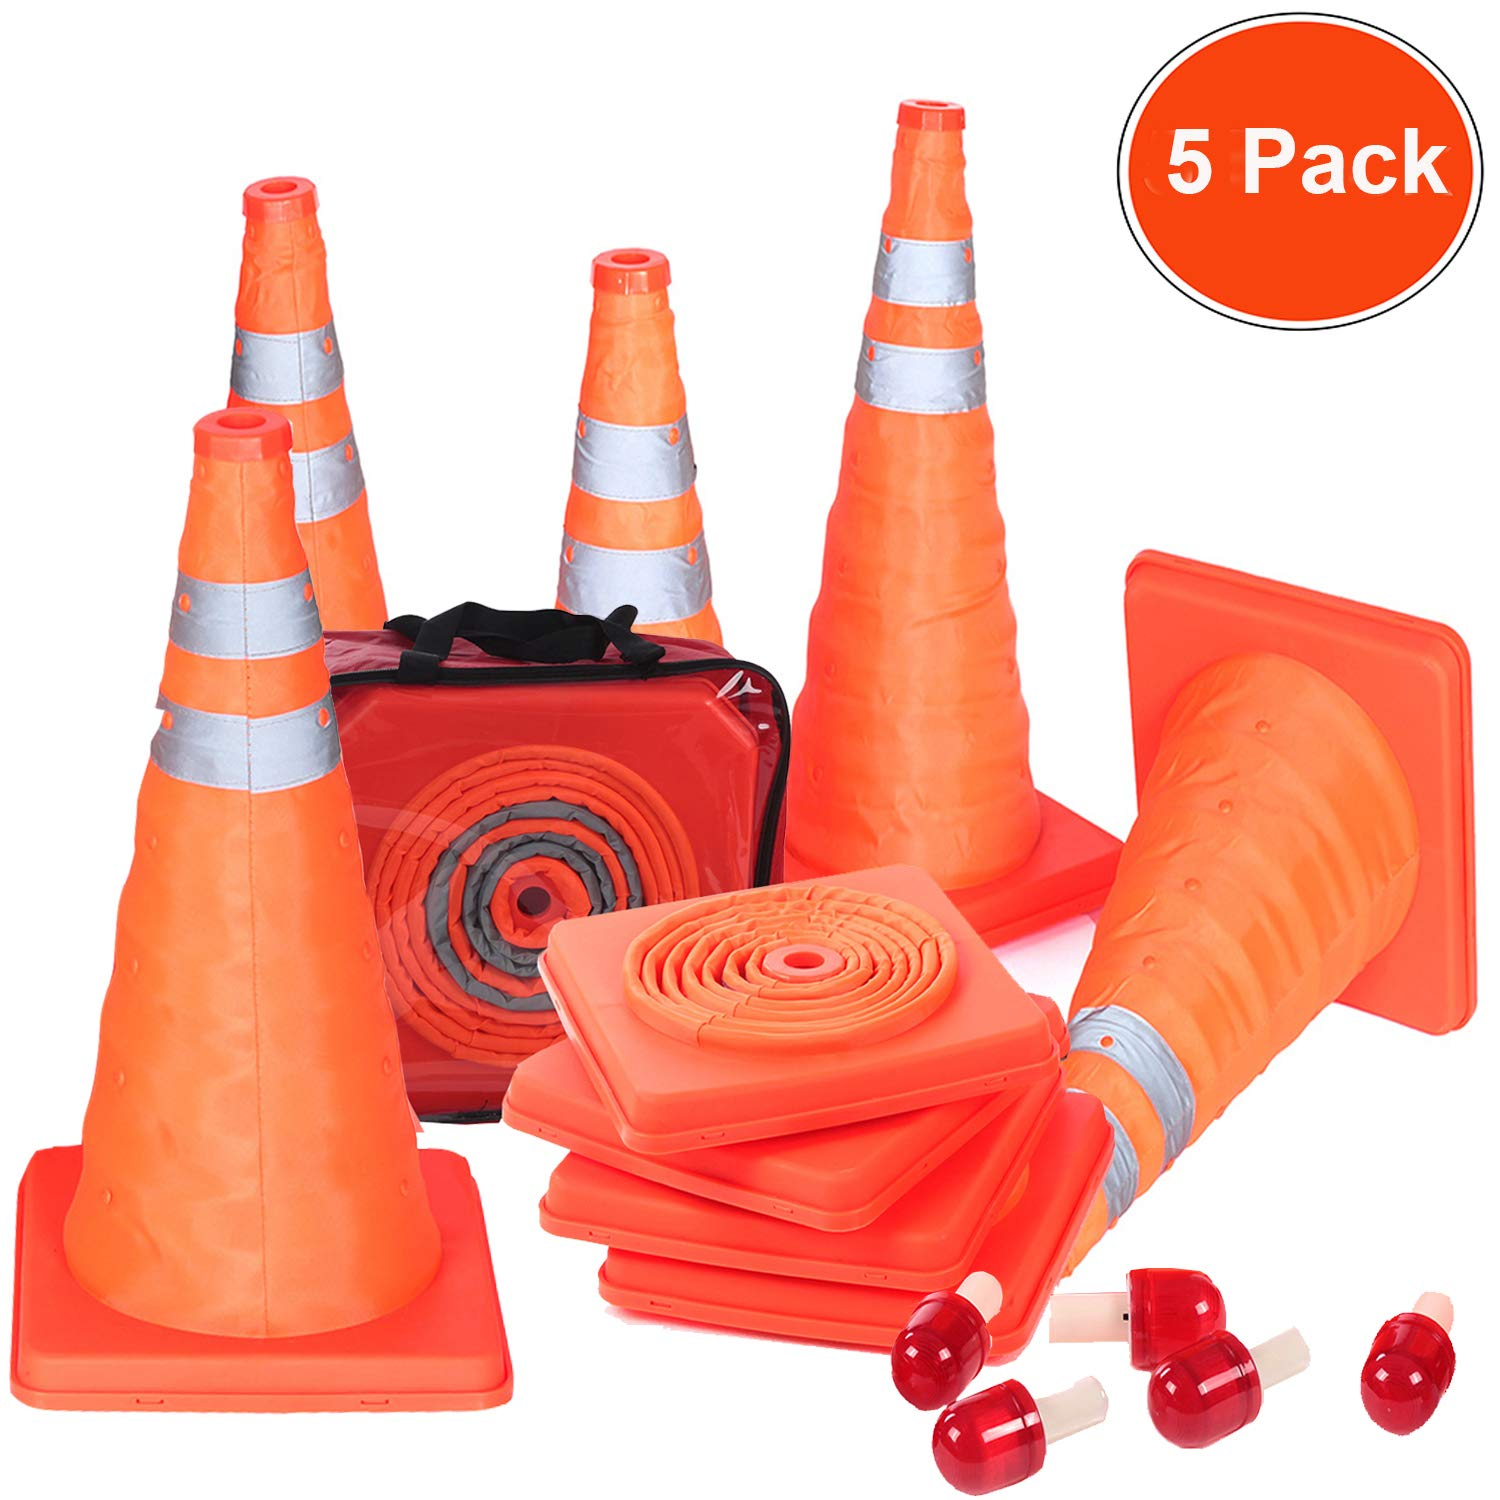 Reliancer 5PCS 18''Collapsible Traffic Cones with Nighttime LED Lights Pop up Safety Road Parking Cones Weighted Hazard Cones Construction Cones Fluorescent Orange w/2 Reflective Silver Strips Collar